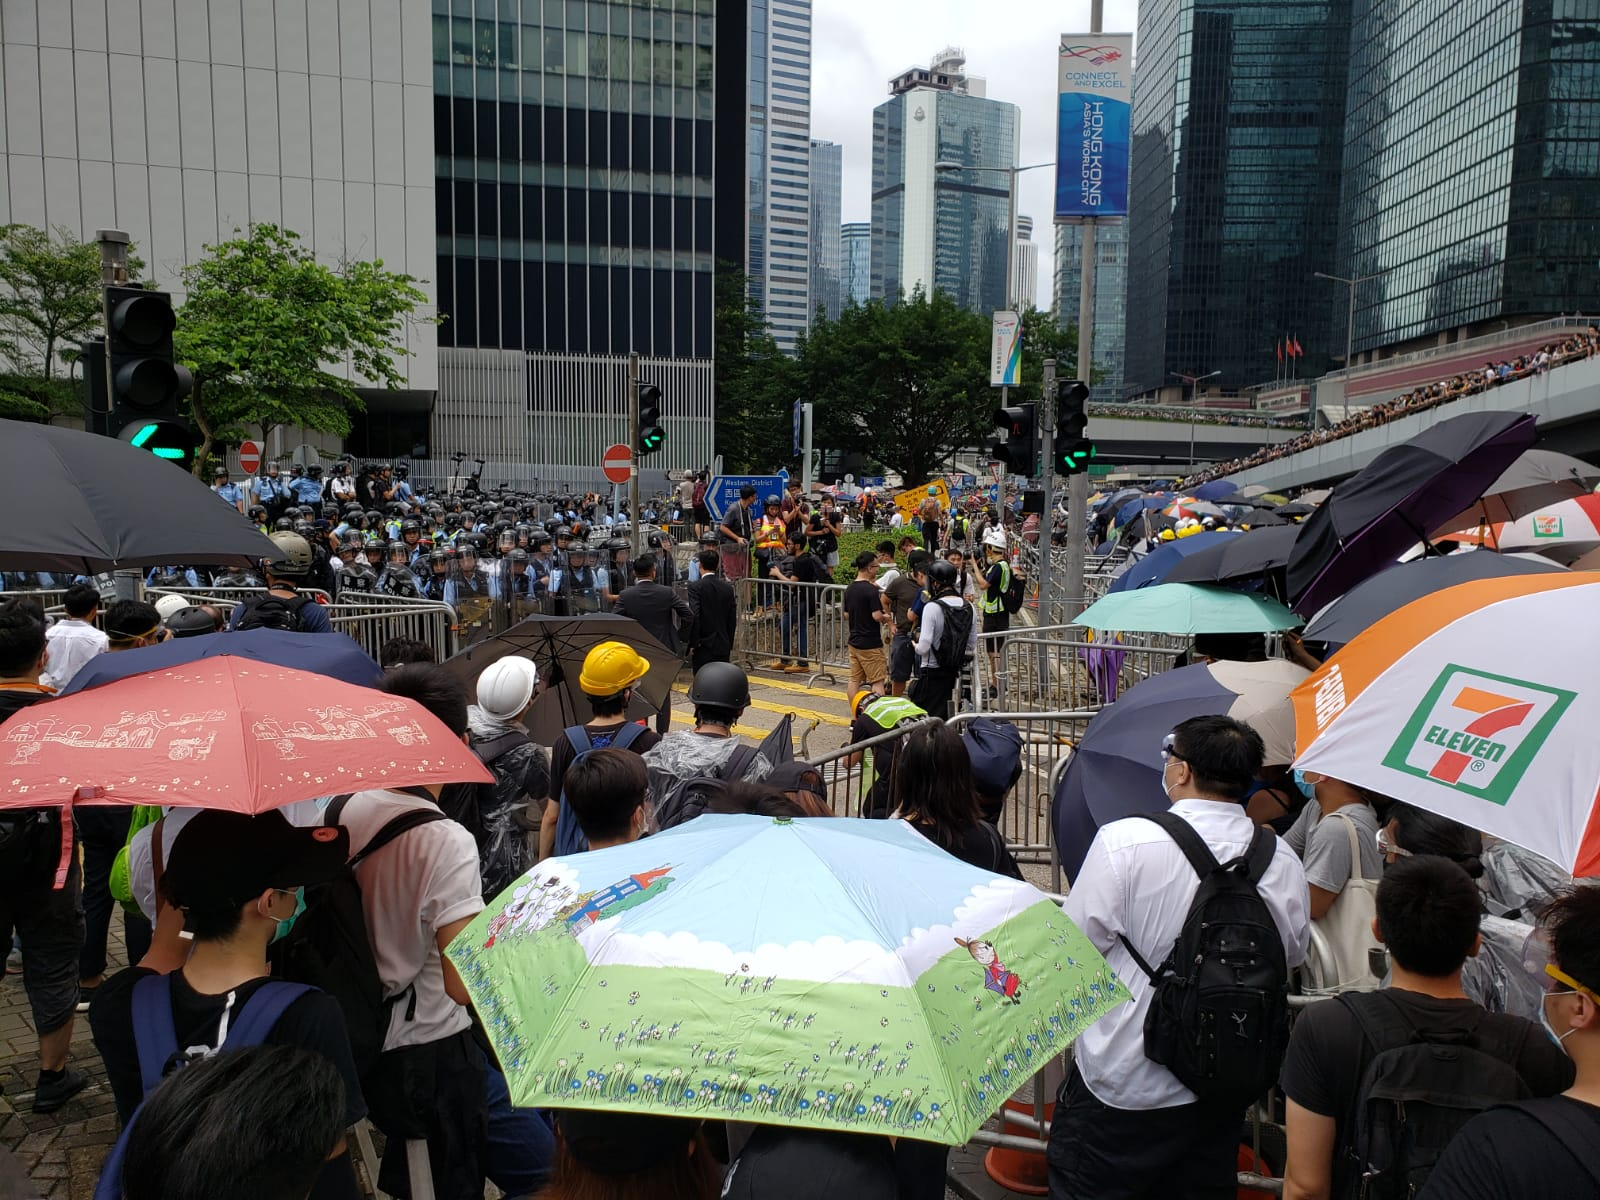 Protesters hand out anti-tear gear and masks by Tim Wa Avenue.